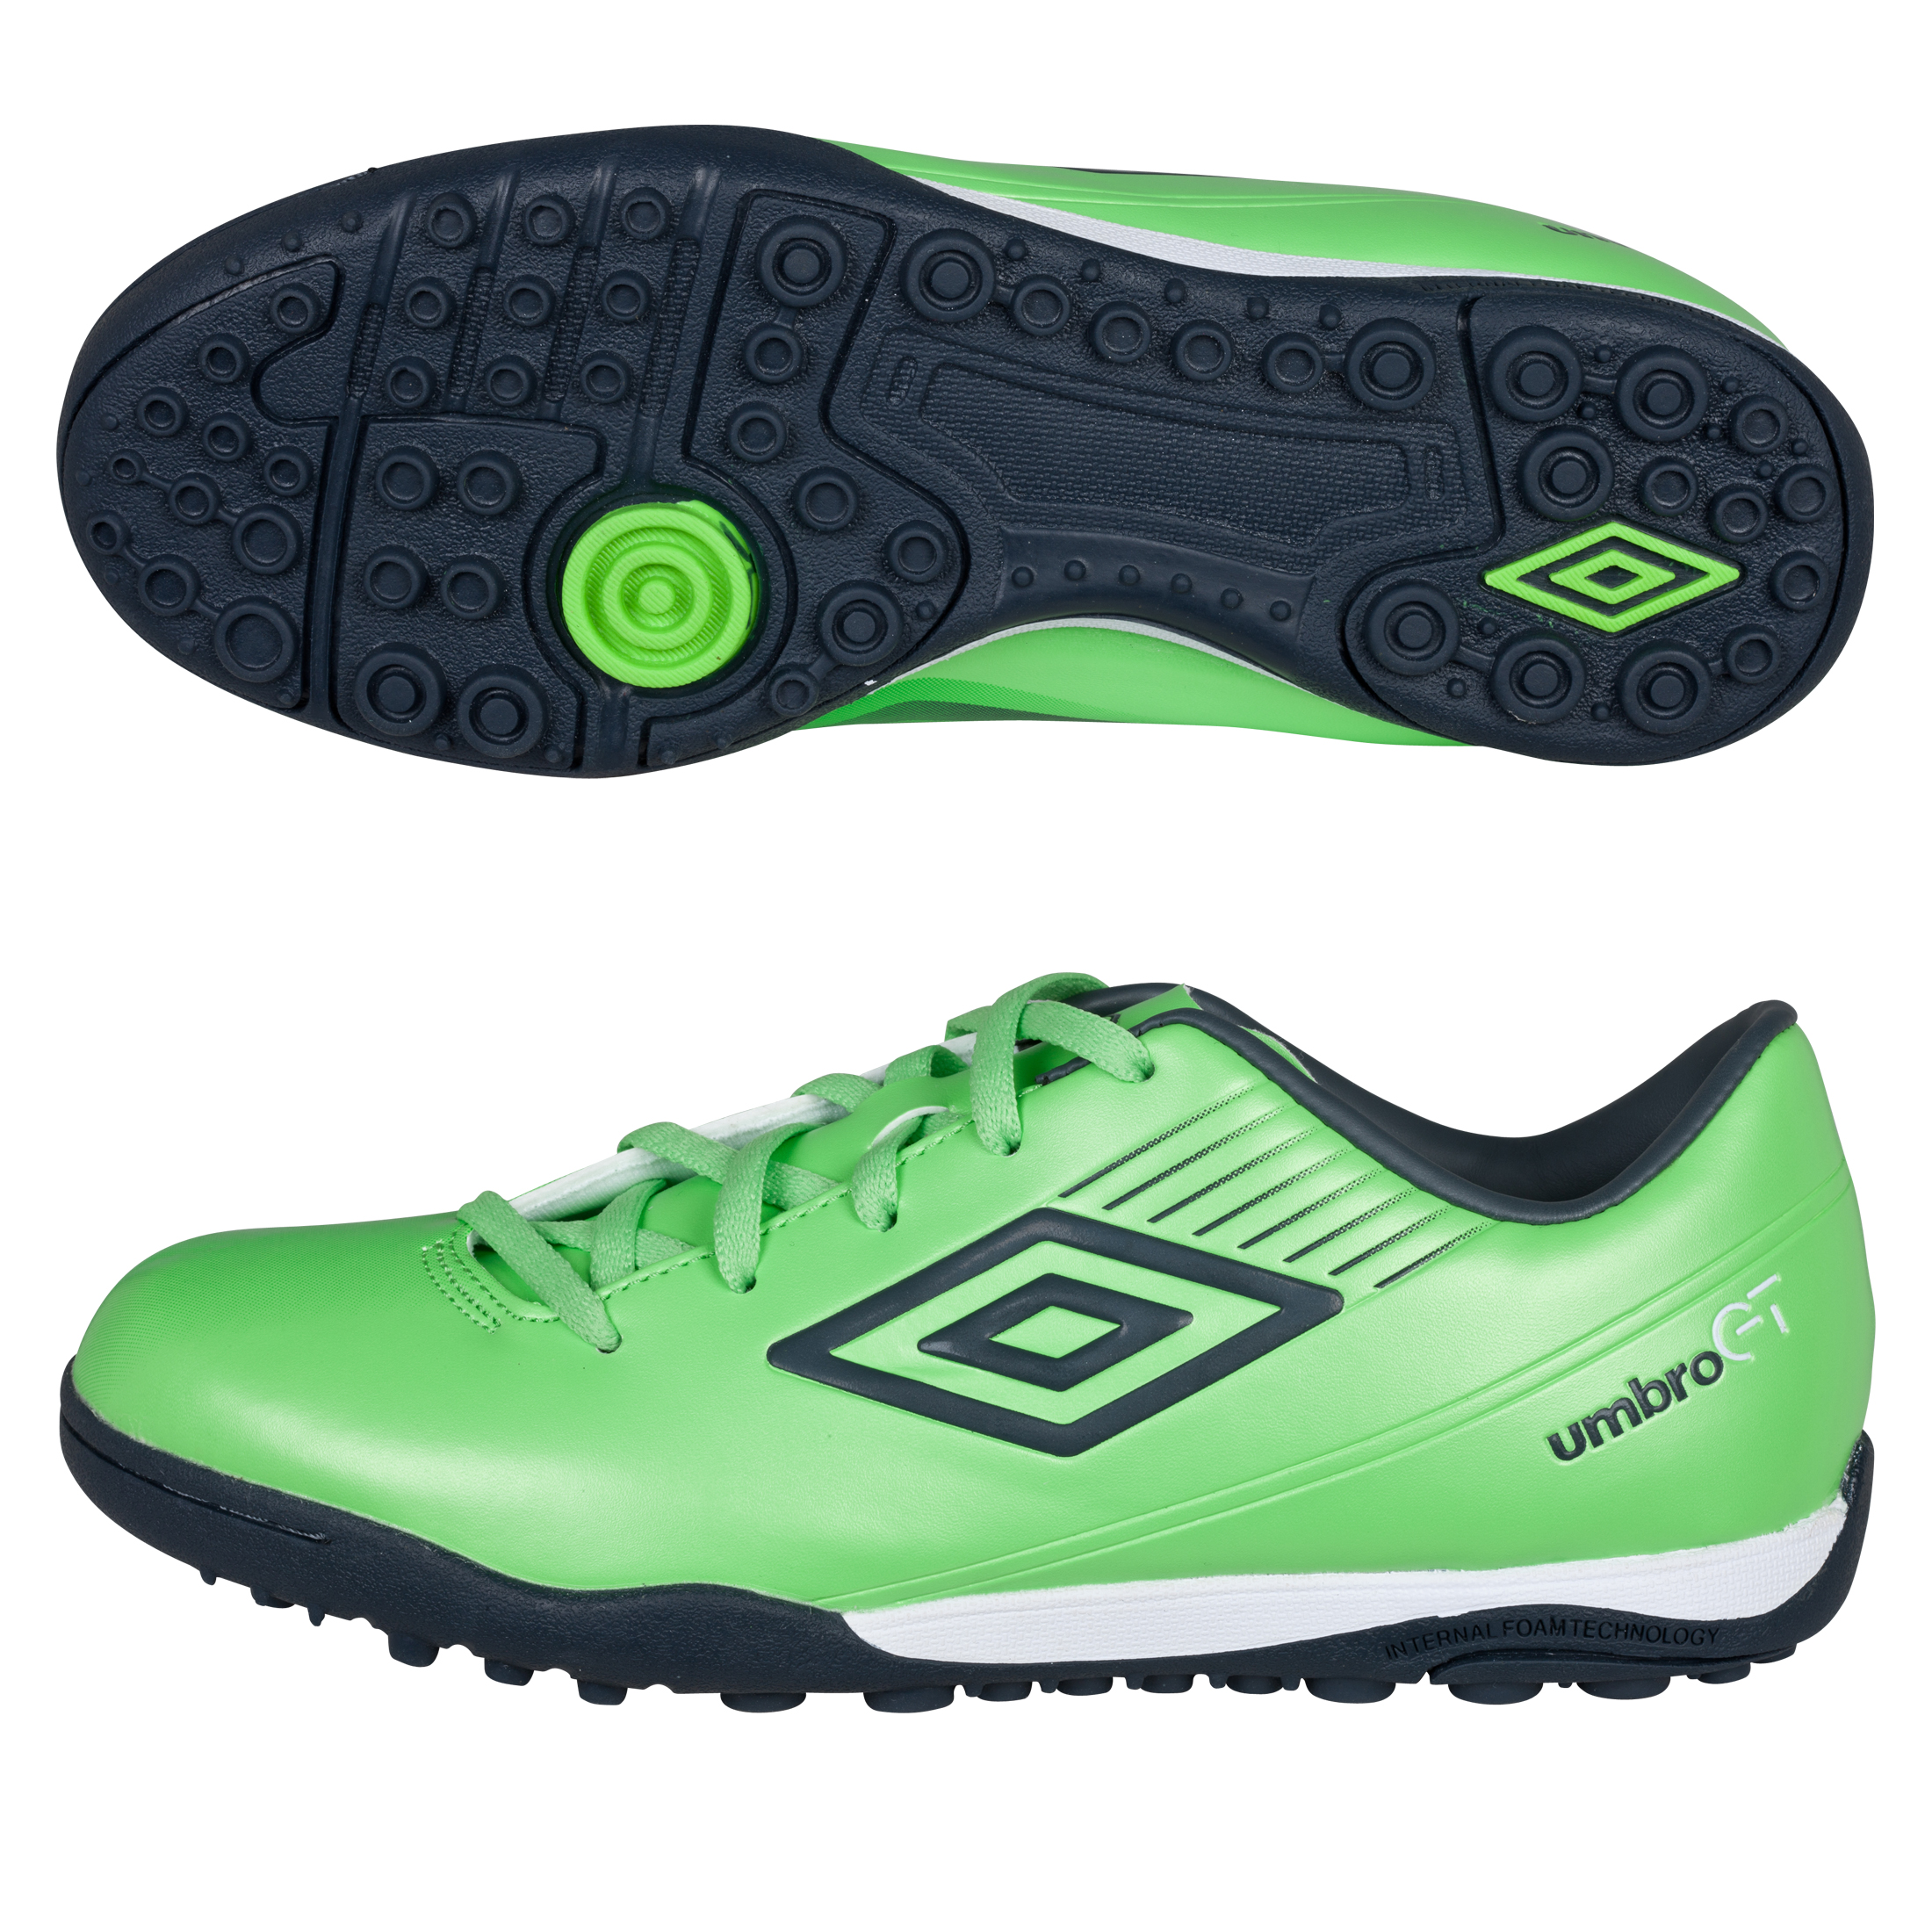 Umbro GT ll Cup Astroturf Trainers - Summer Green/Carbon/White - Kids